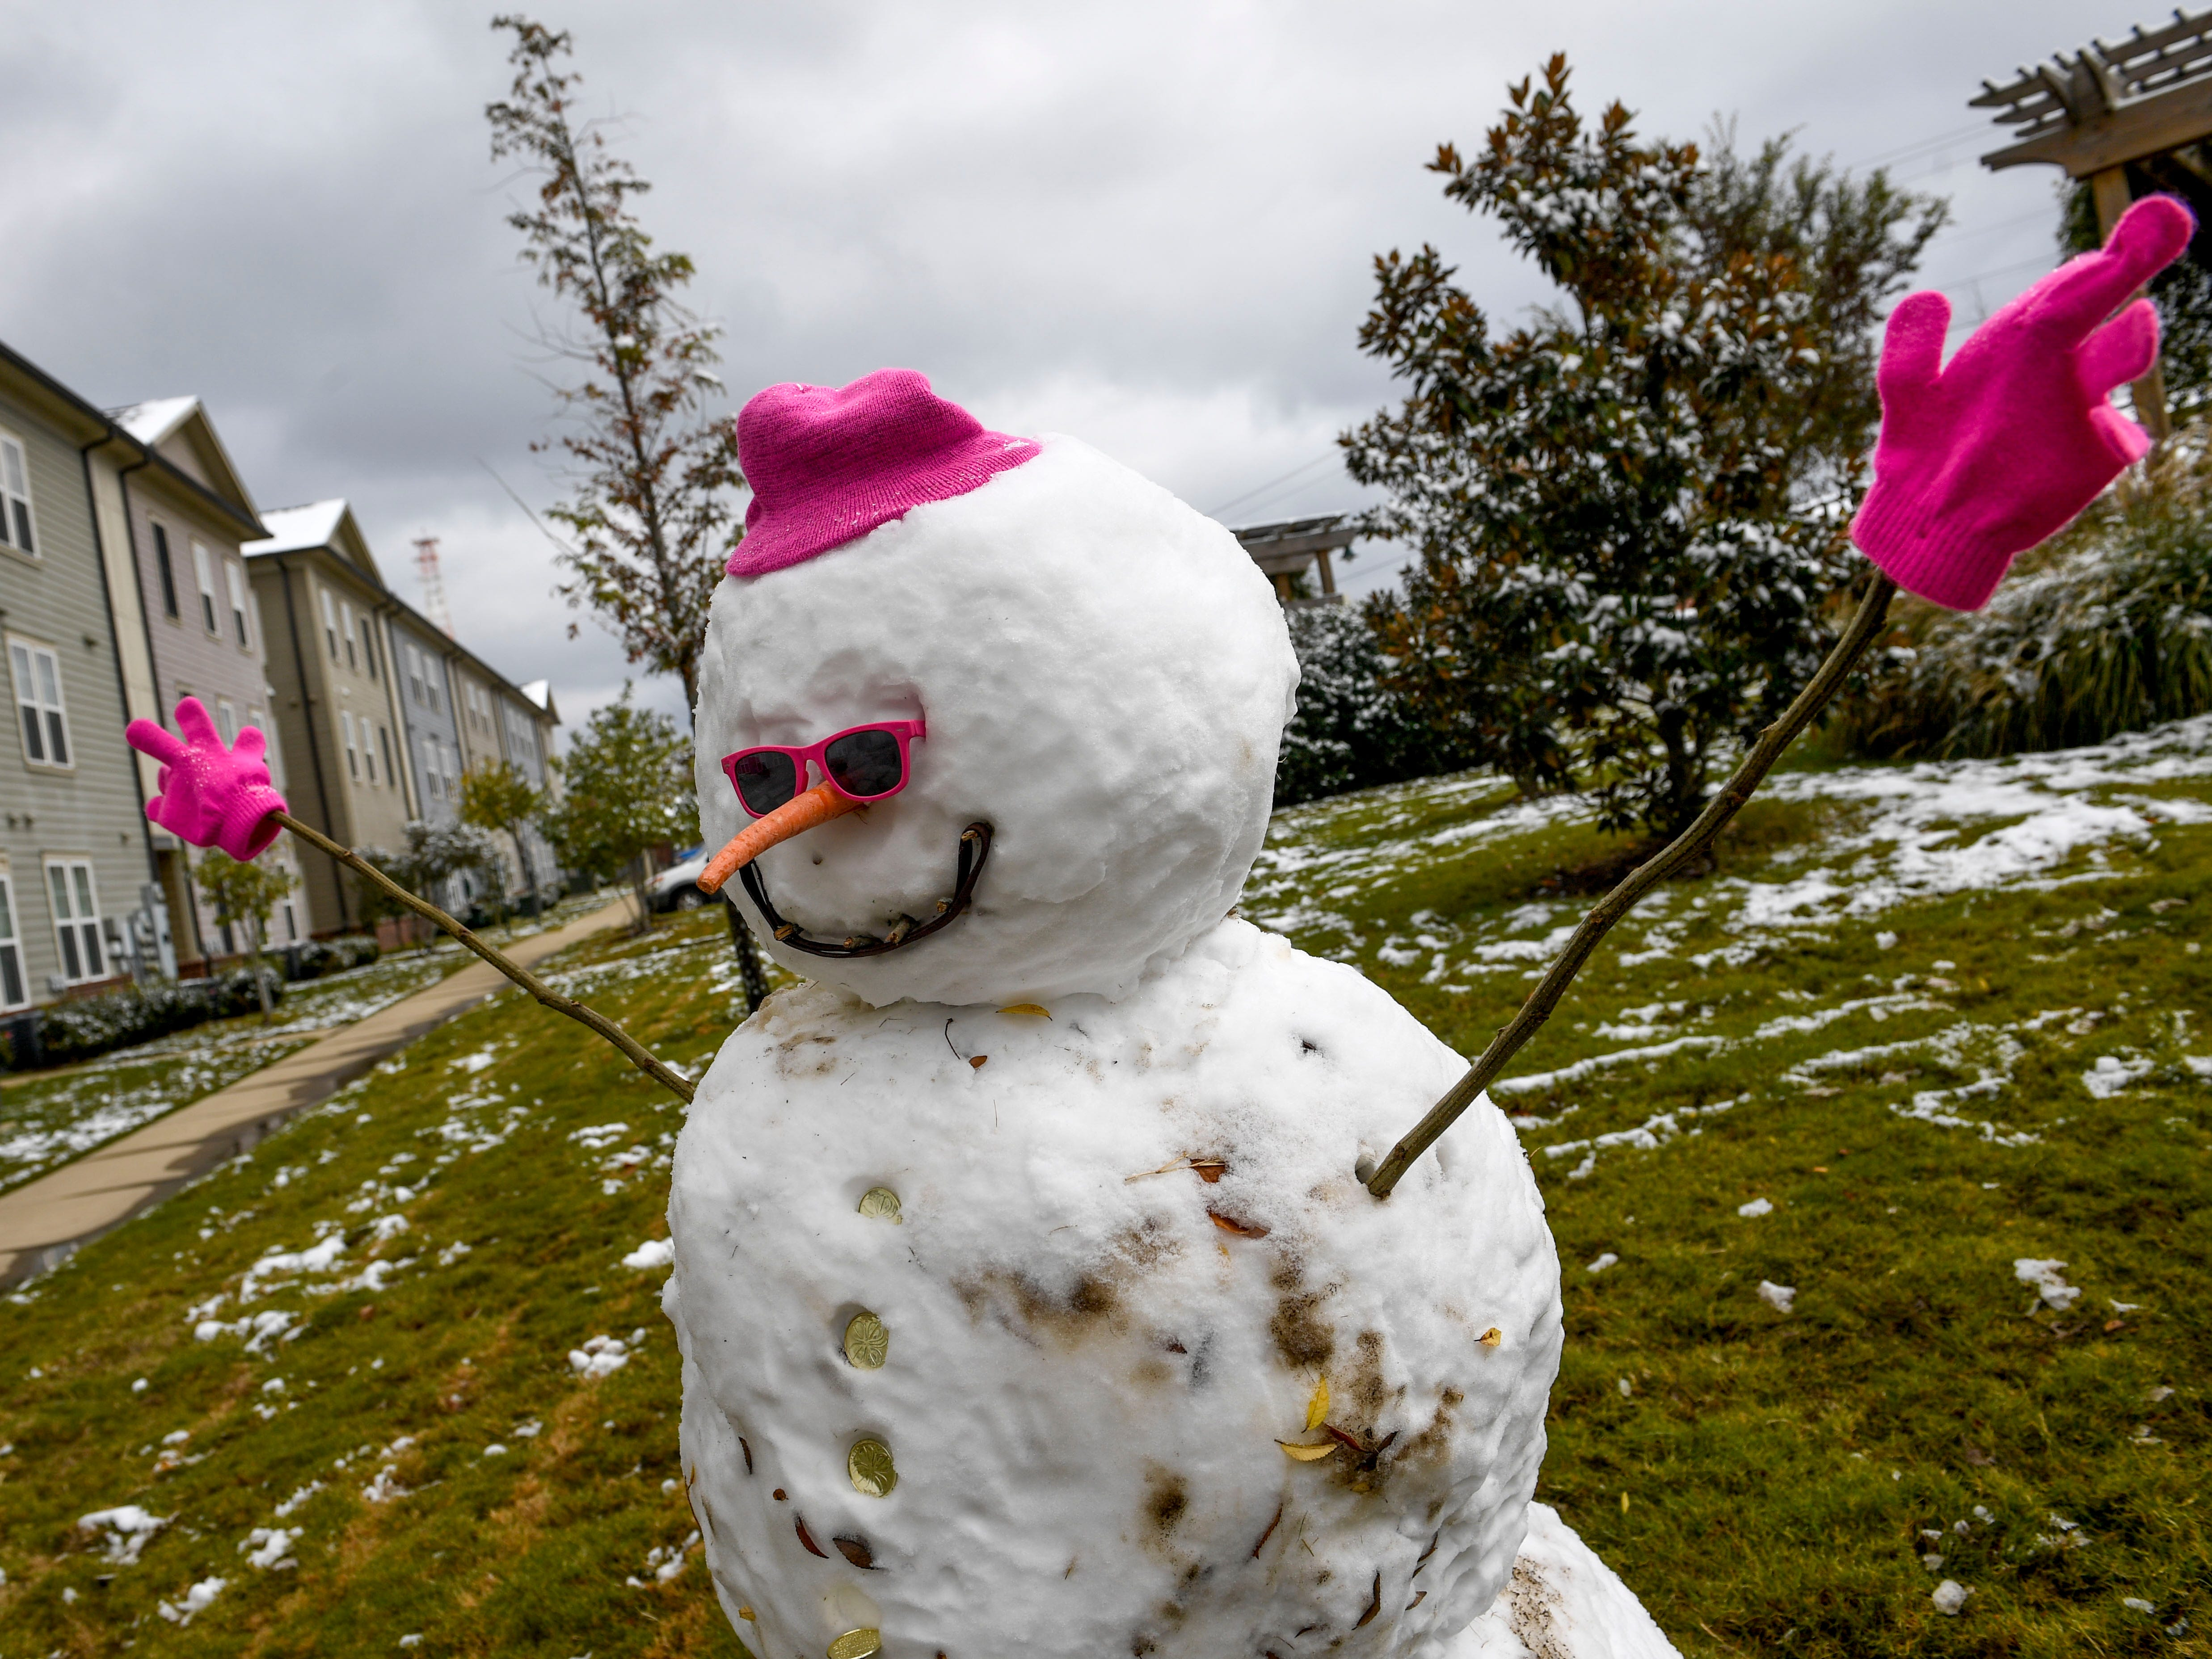 A snowman can be seen after an early snowfall coated scenes of late changing fall leaves, streets, and downtown with powdery snow in Jackson, Tenn., on Thursday, Nov. 15, 2018.